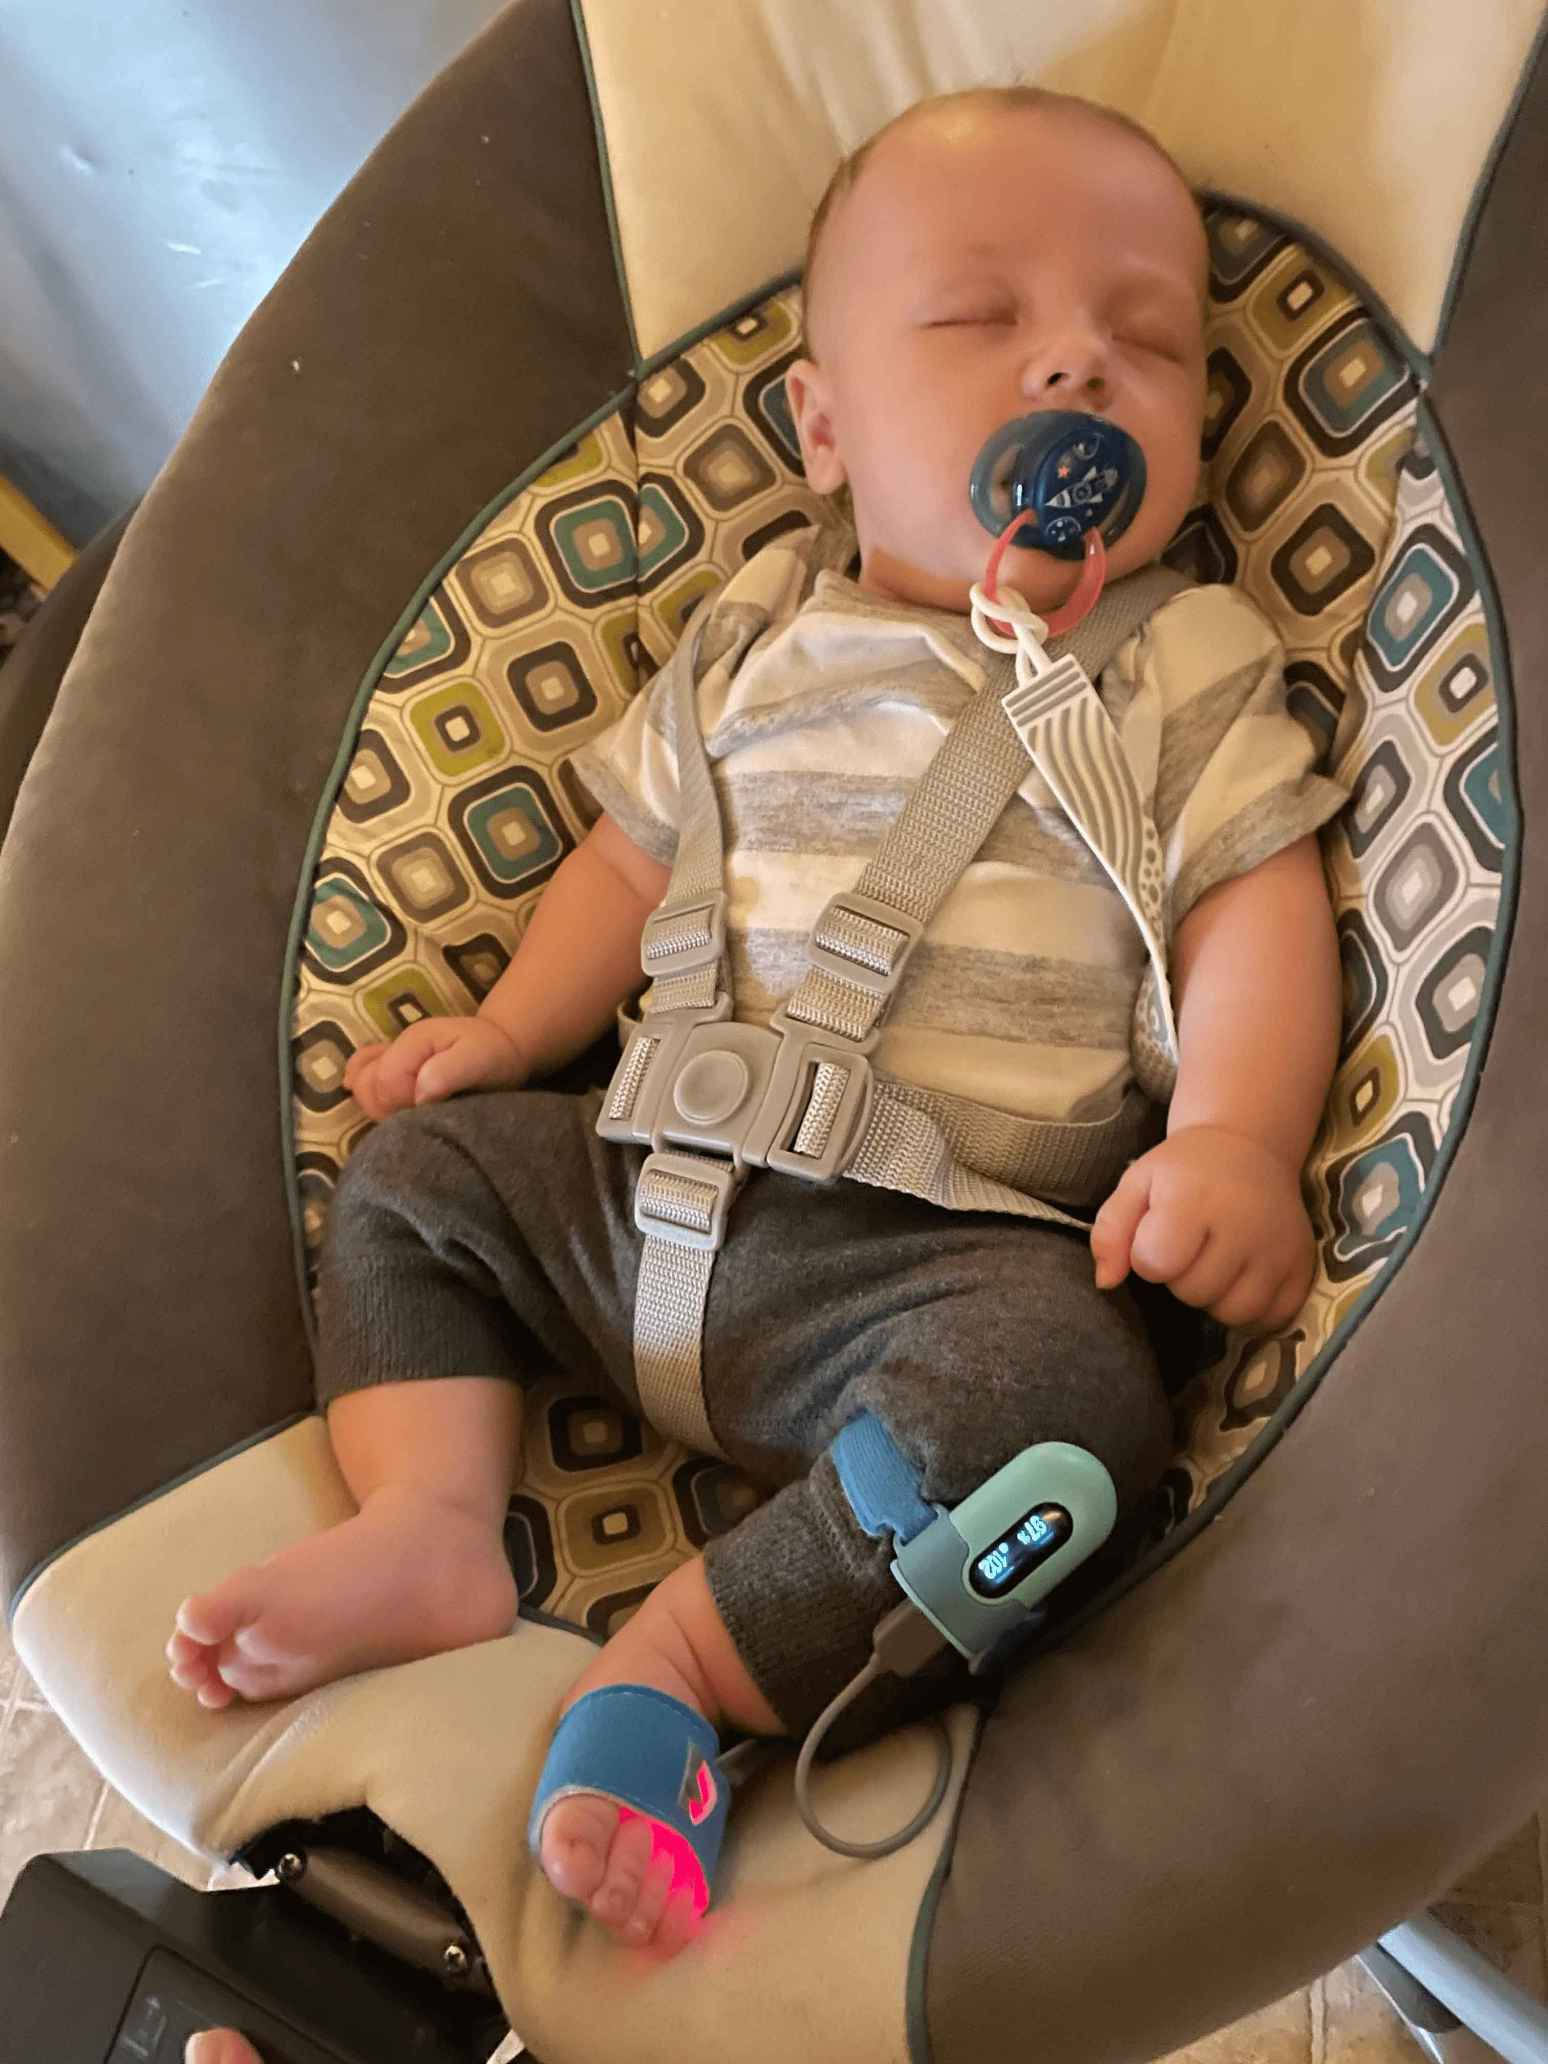 Mrs Hendrix's son is wearing Wellue Baby O2 peacefully in his chair.